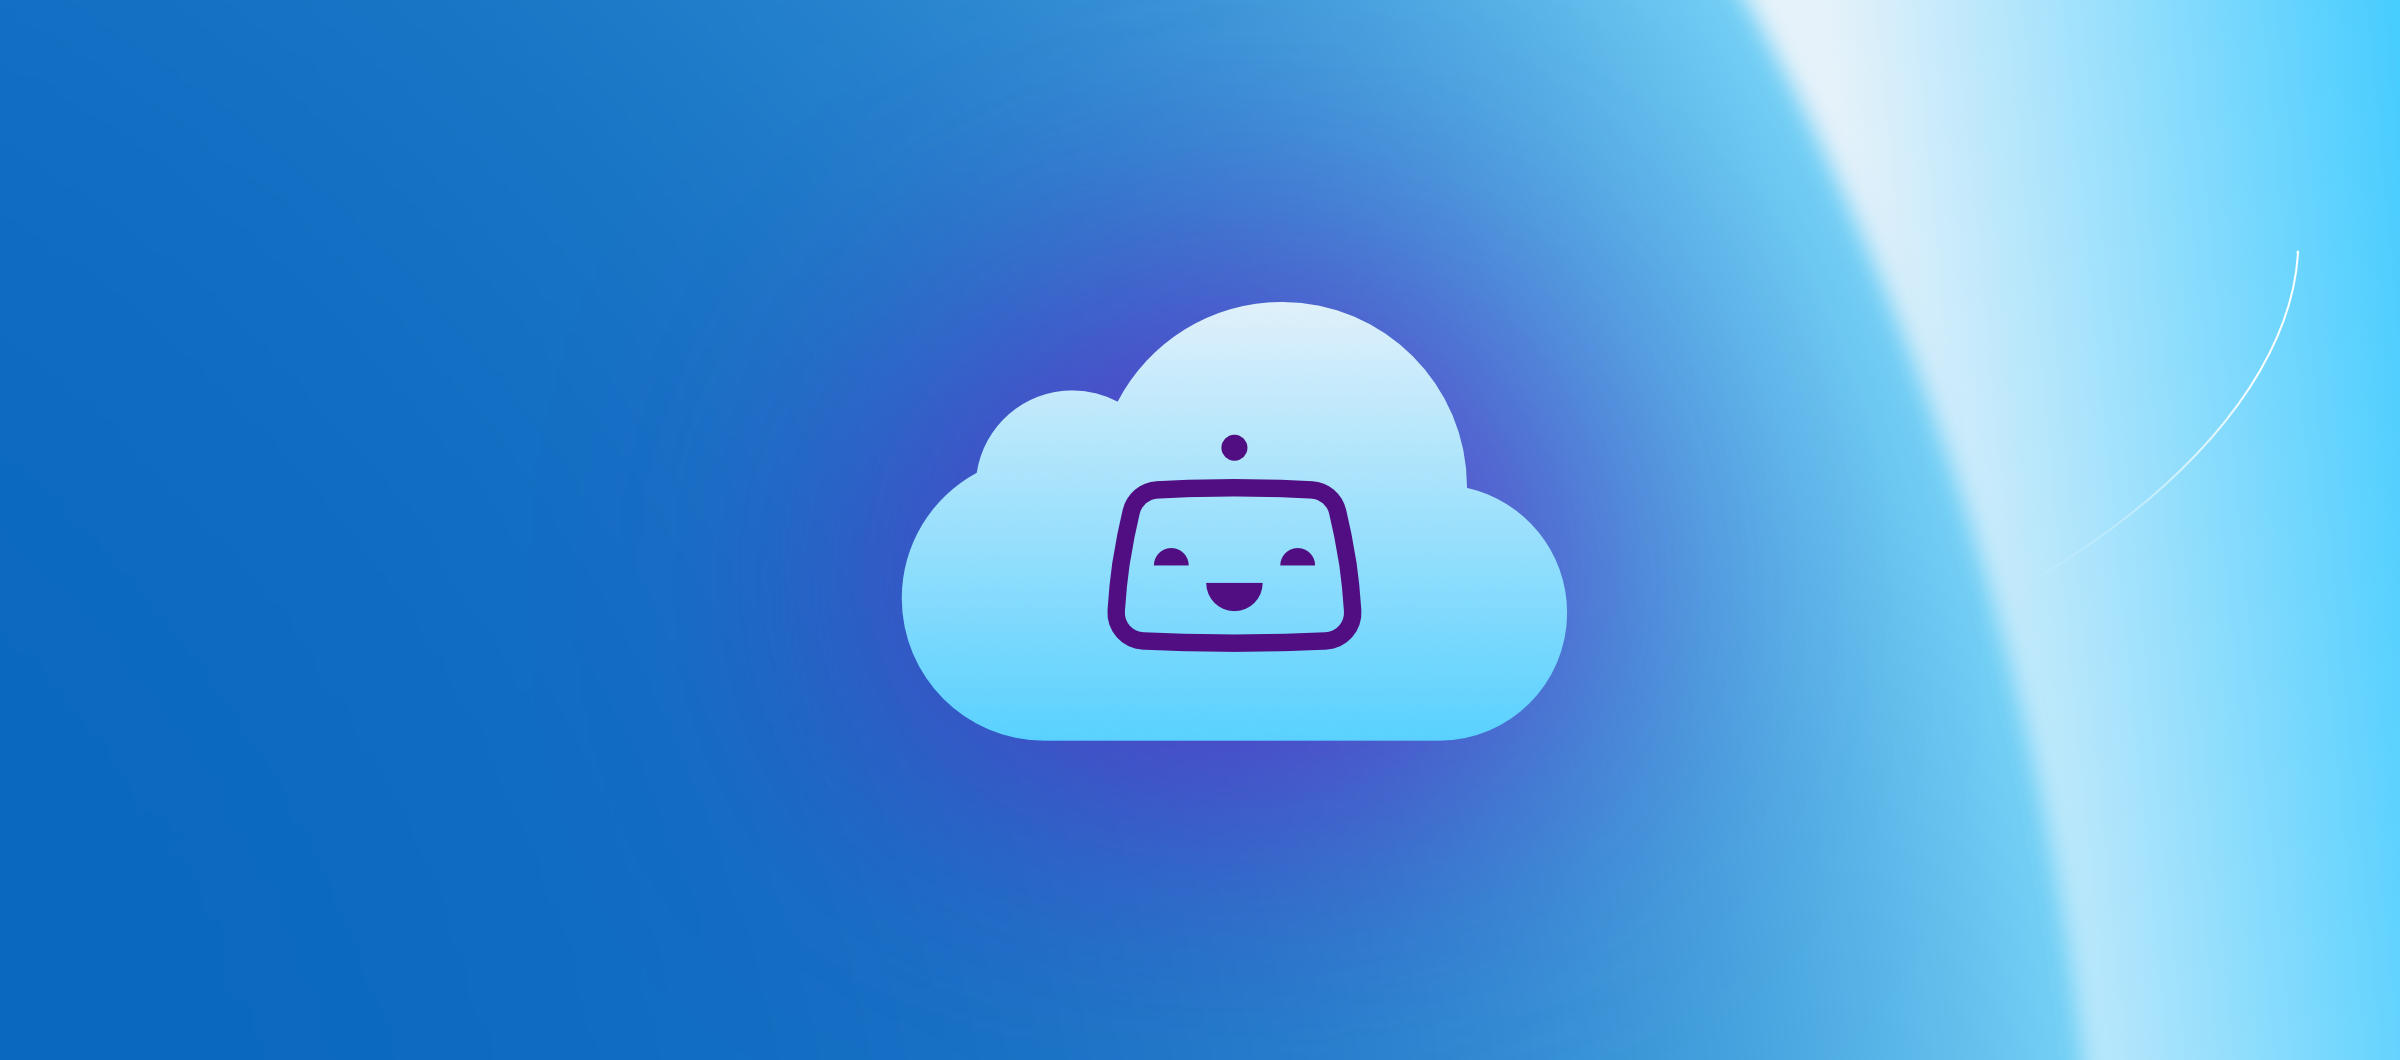 It's time to move your CI/CD to the cloud